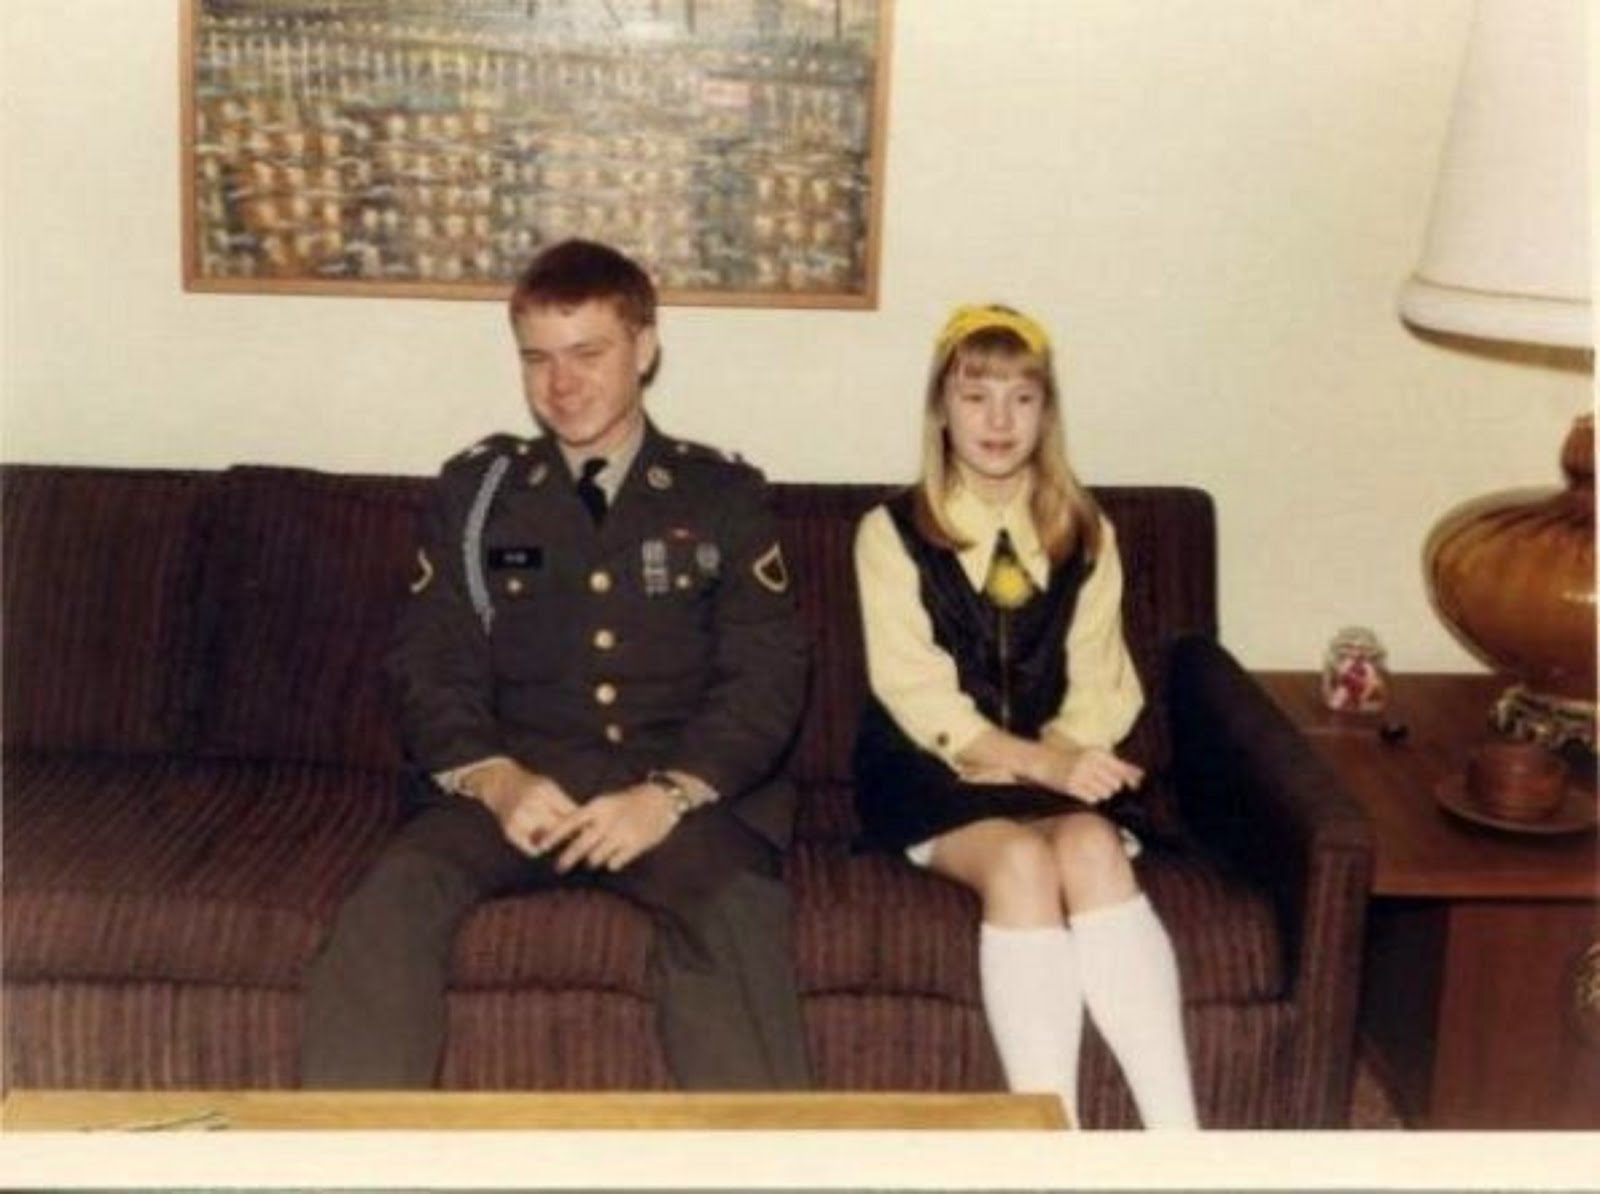 ME PFC GREG PAYNE AND MY LITTLE SISTER KATHY F. PAYNE JUST BEFORE I LEFT FOR VIETNAM ON THE NIGHT O